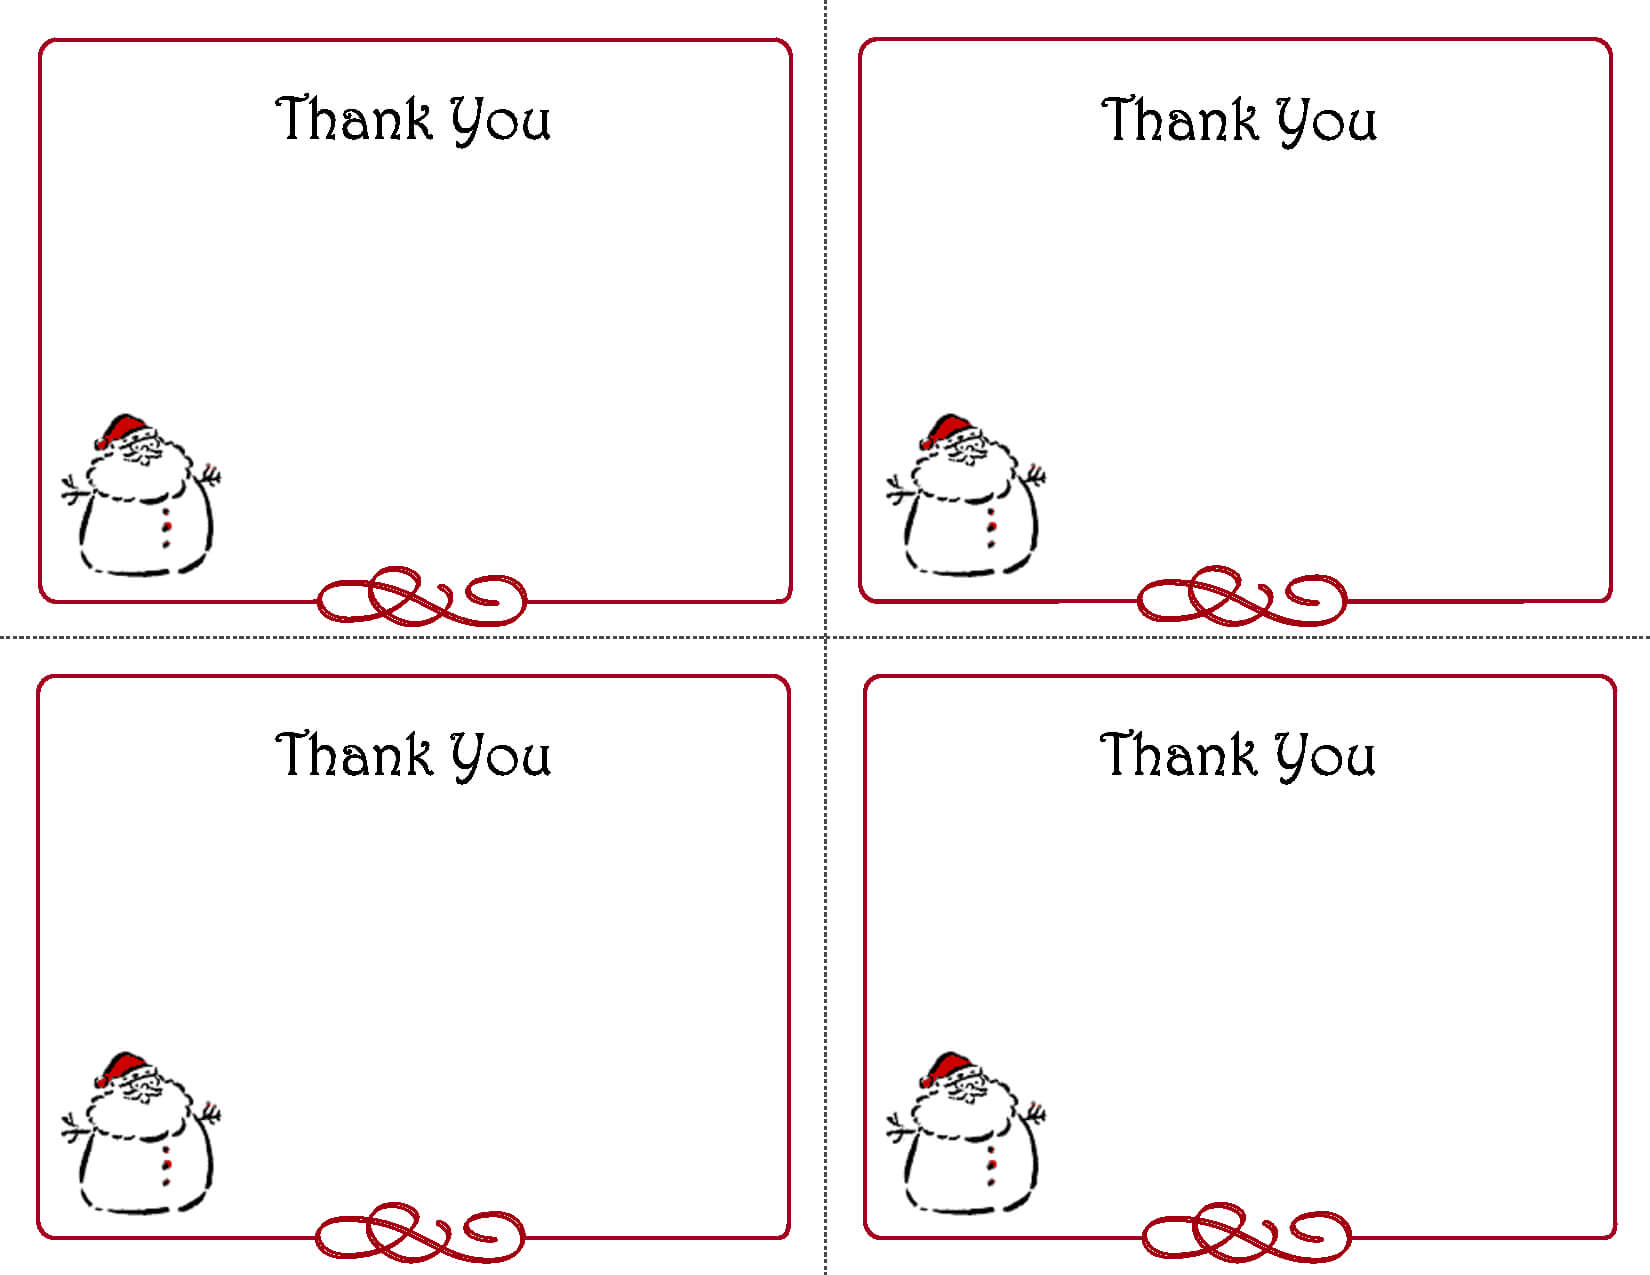 001 Template Ideas Thank You Note Free Phenomenal Online Pertaining To Thank You Note Cards Template